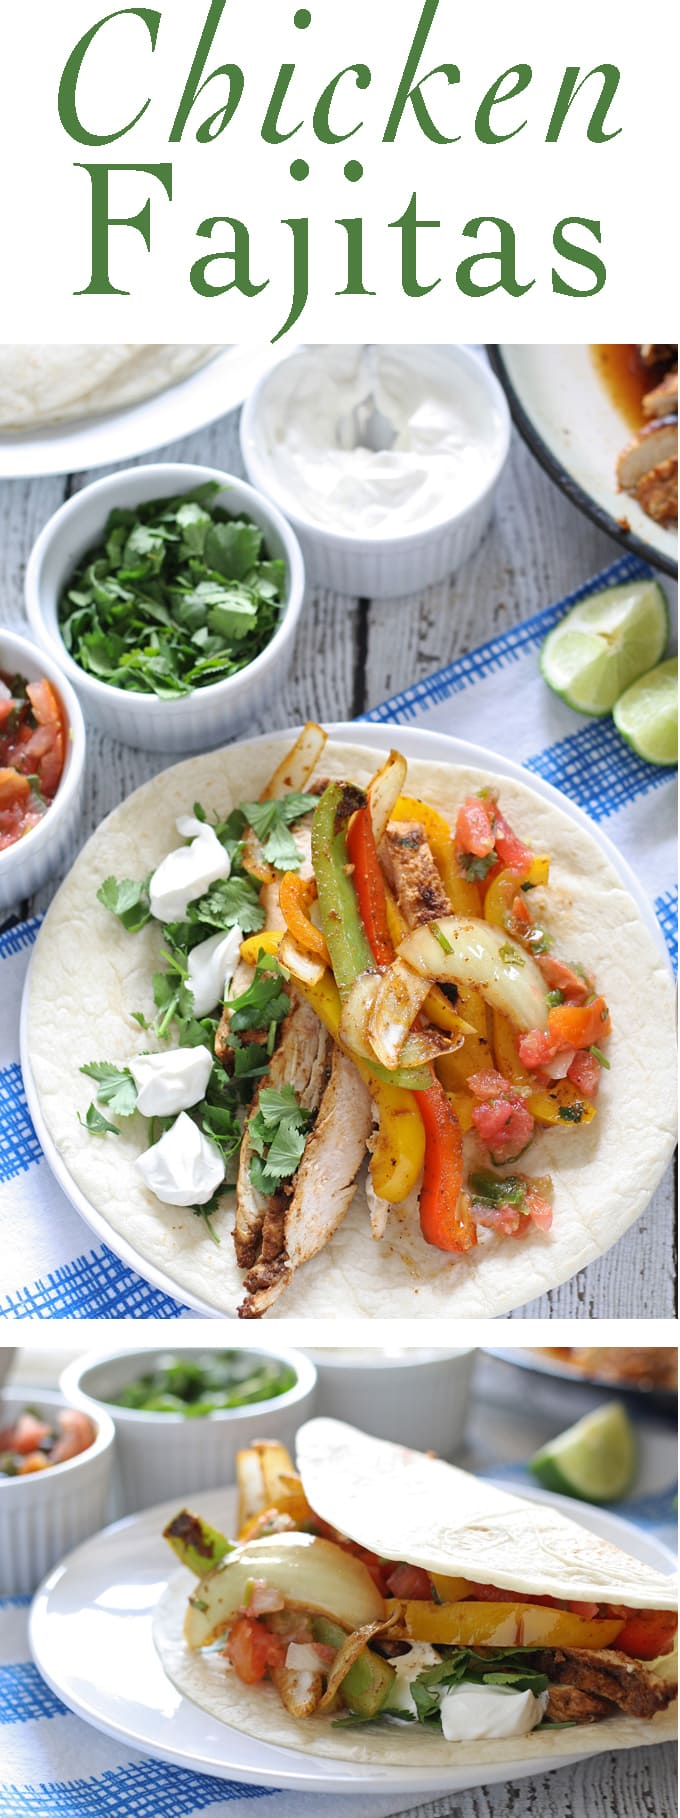 Make everyone happy with these grilled chicken fajitas. Chicken fajitas are the perfect recipe for summer family dinners - everyone can put whatever toppings they want on their own fajitas.